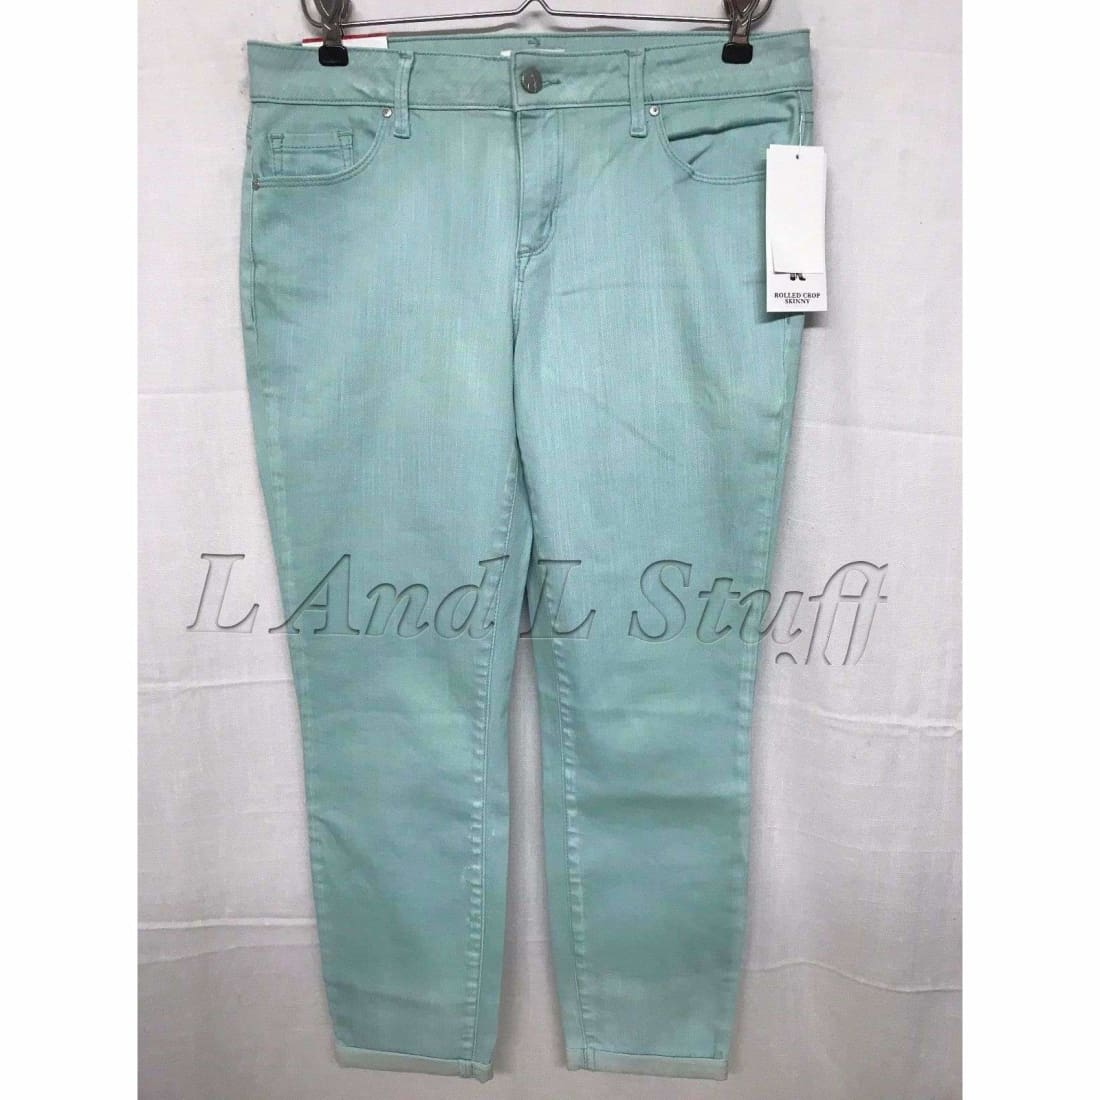 Jessica Simpson Rolled Crop Skinny Super Stretch Jeans Womens Jeans